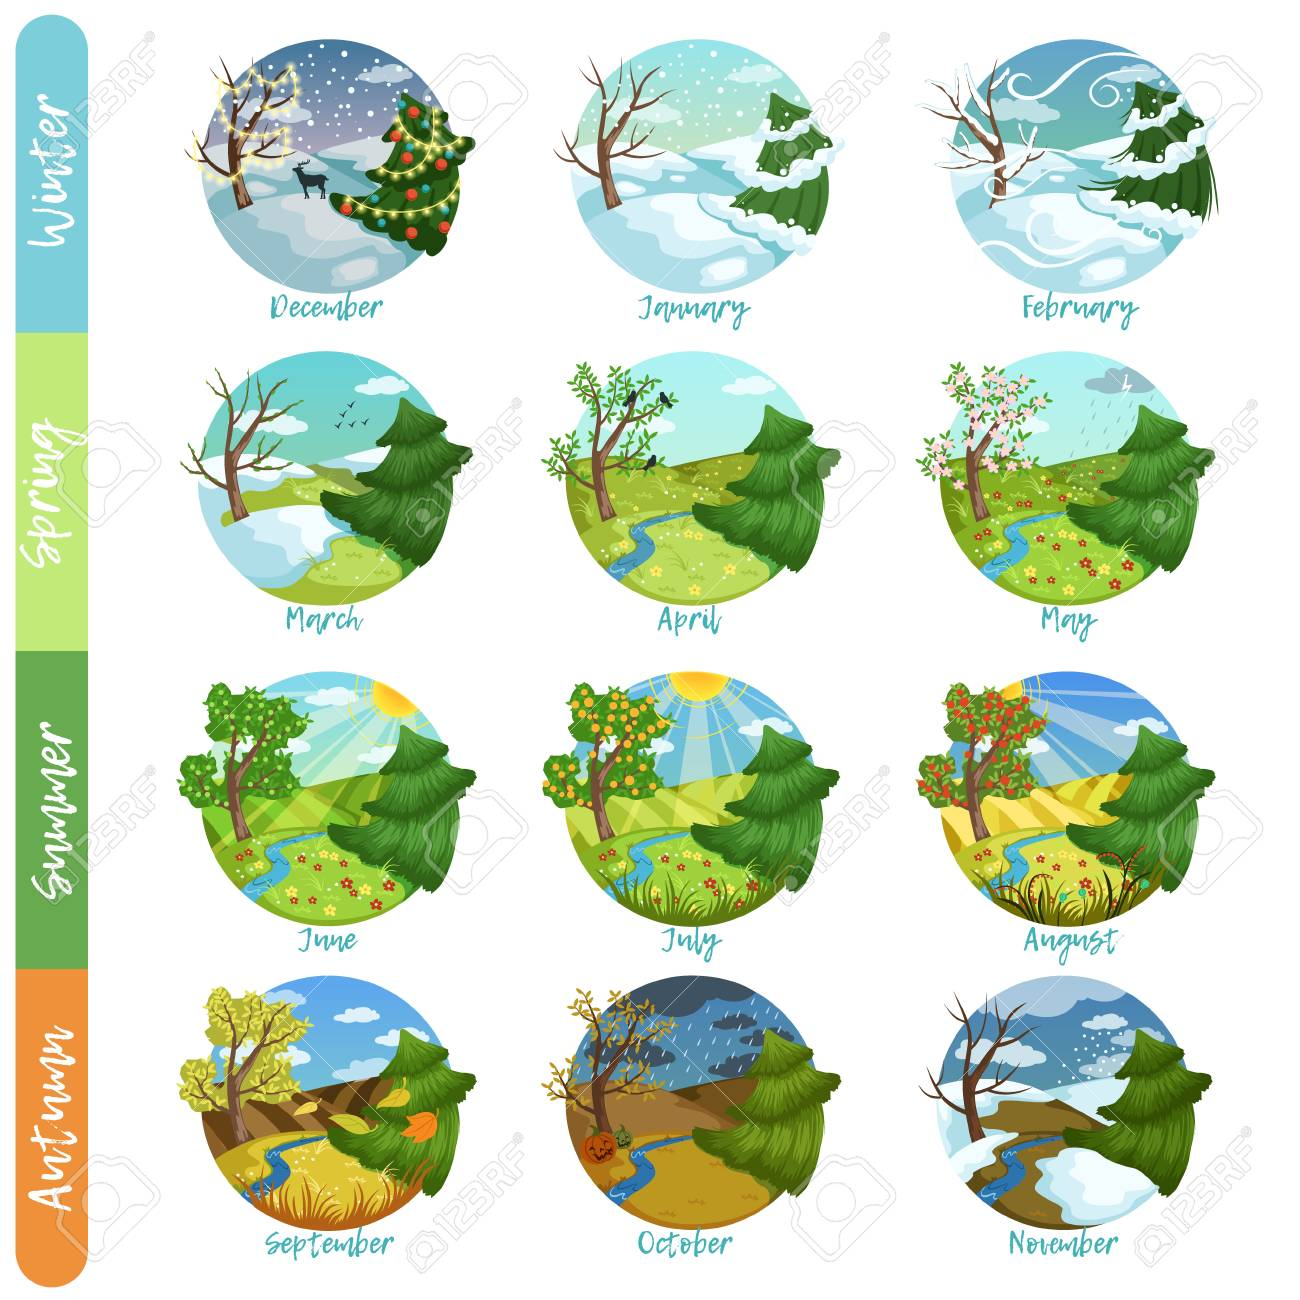 Twelve months of the year set, four seasons nature landscape winter, spring, summer, autumn vector illustrations isolated on a white background - 94132035